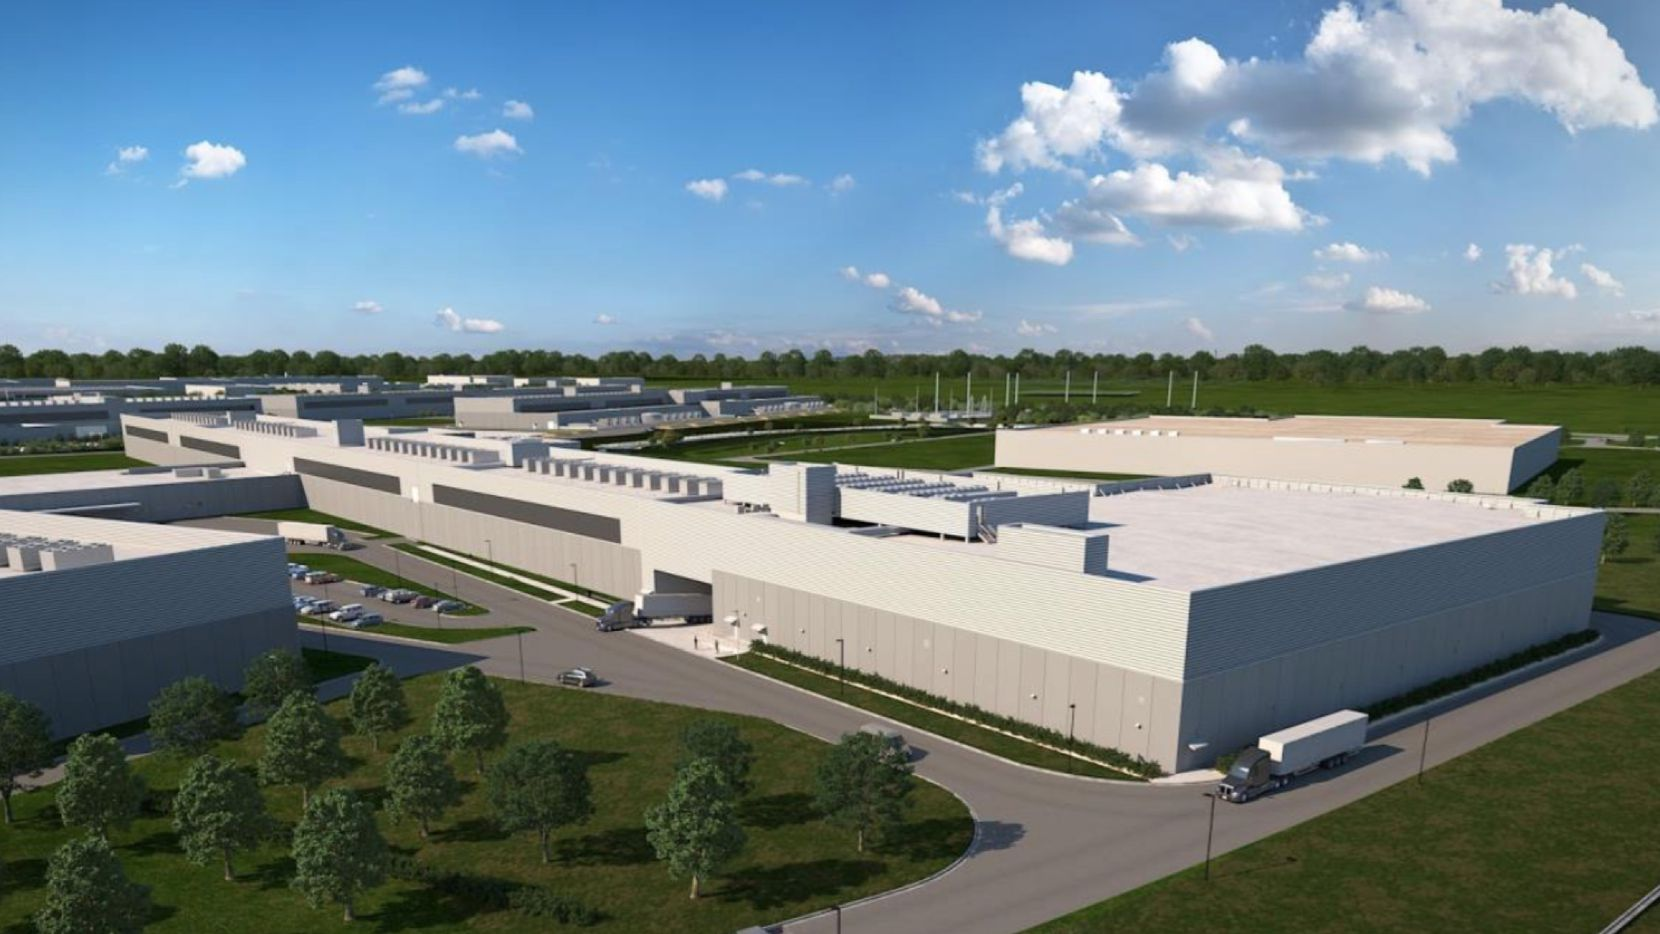 Facebook is adding to its North Fort Worth data center campus, which opened in 2017.